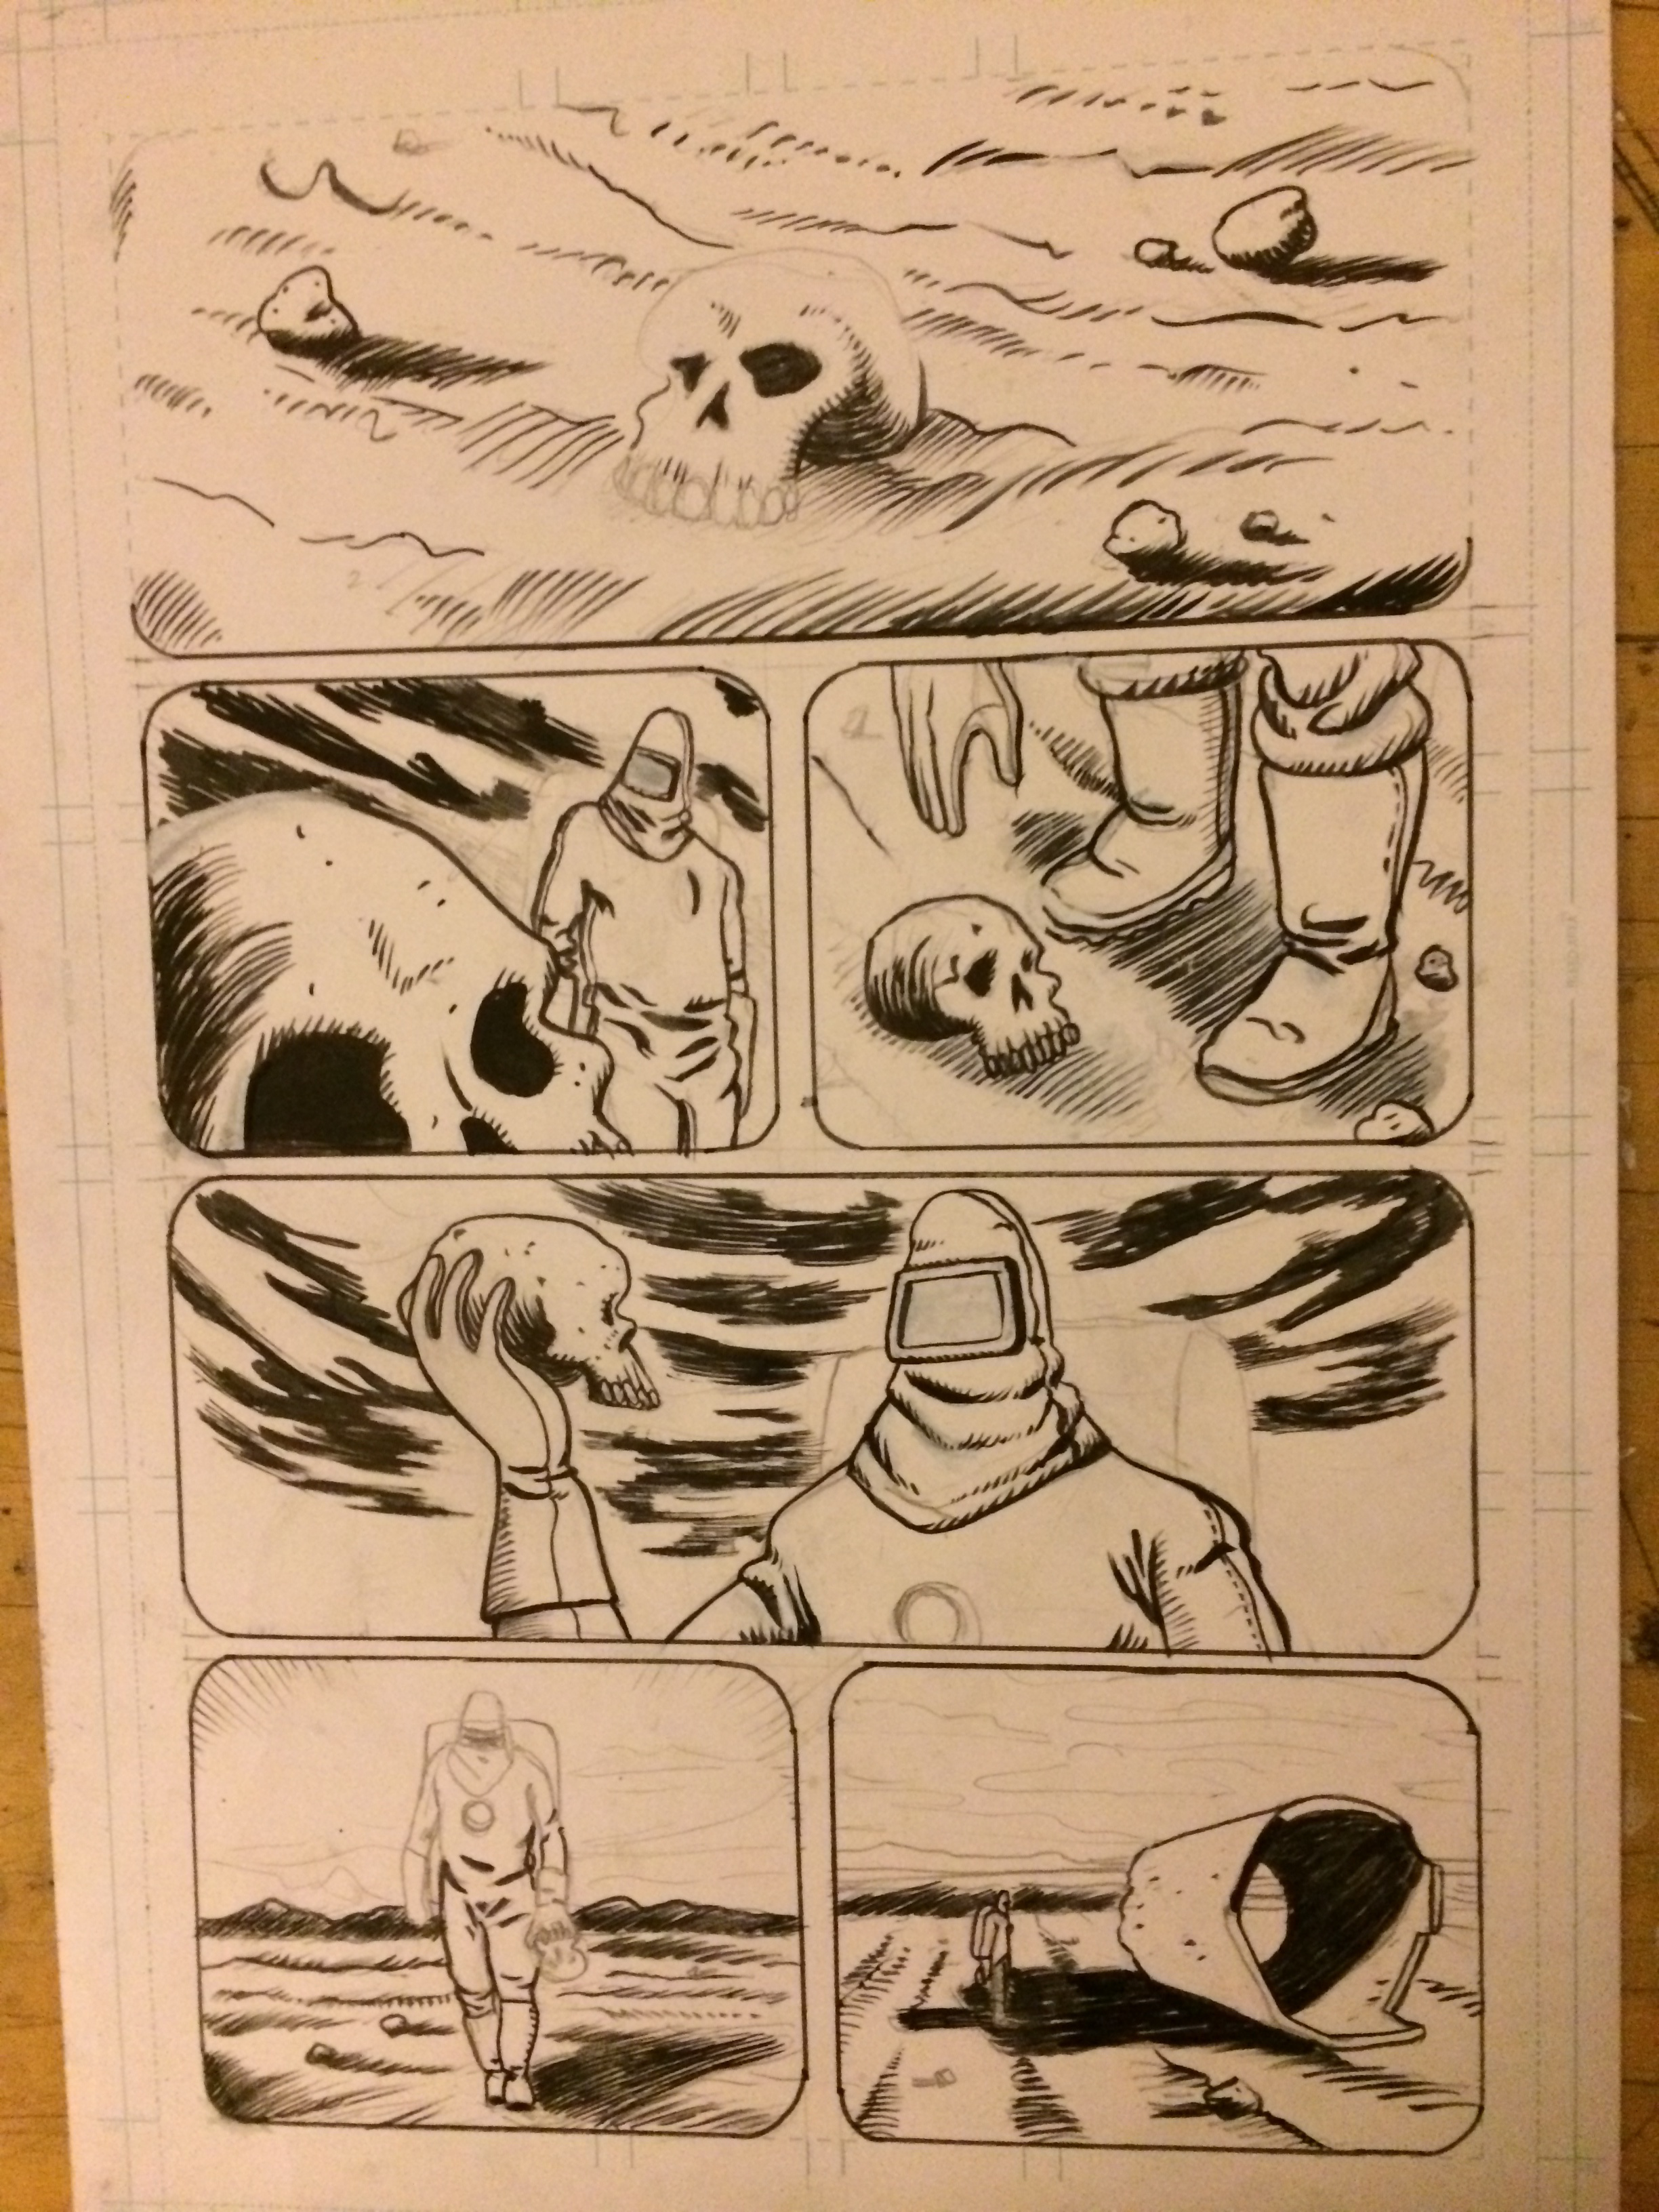 I started inking the page form the previous post. I'm making some progress but I still have a ways to go.